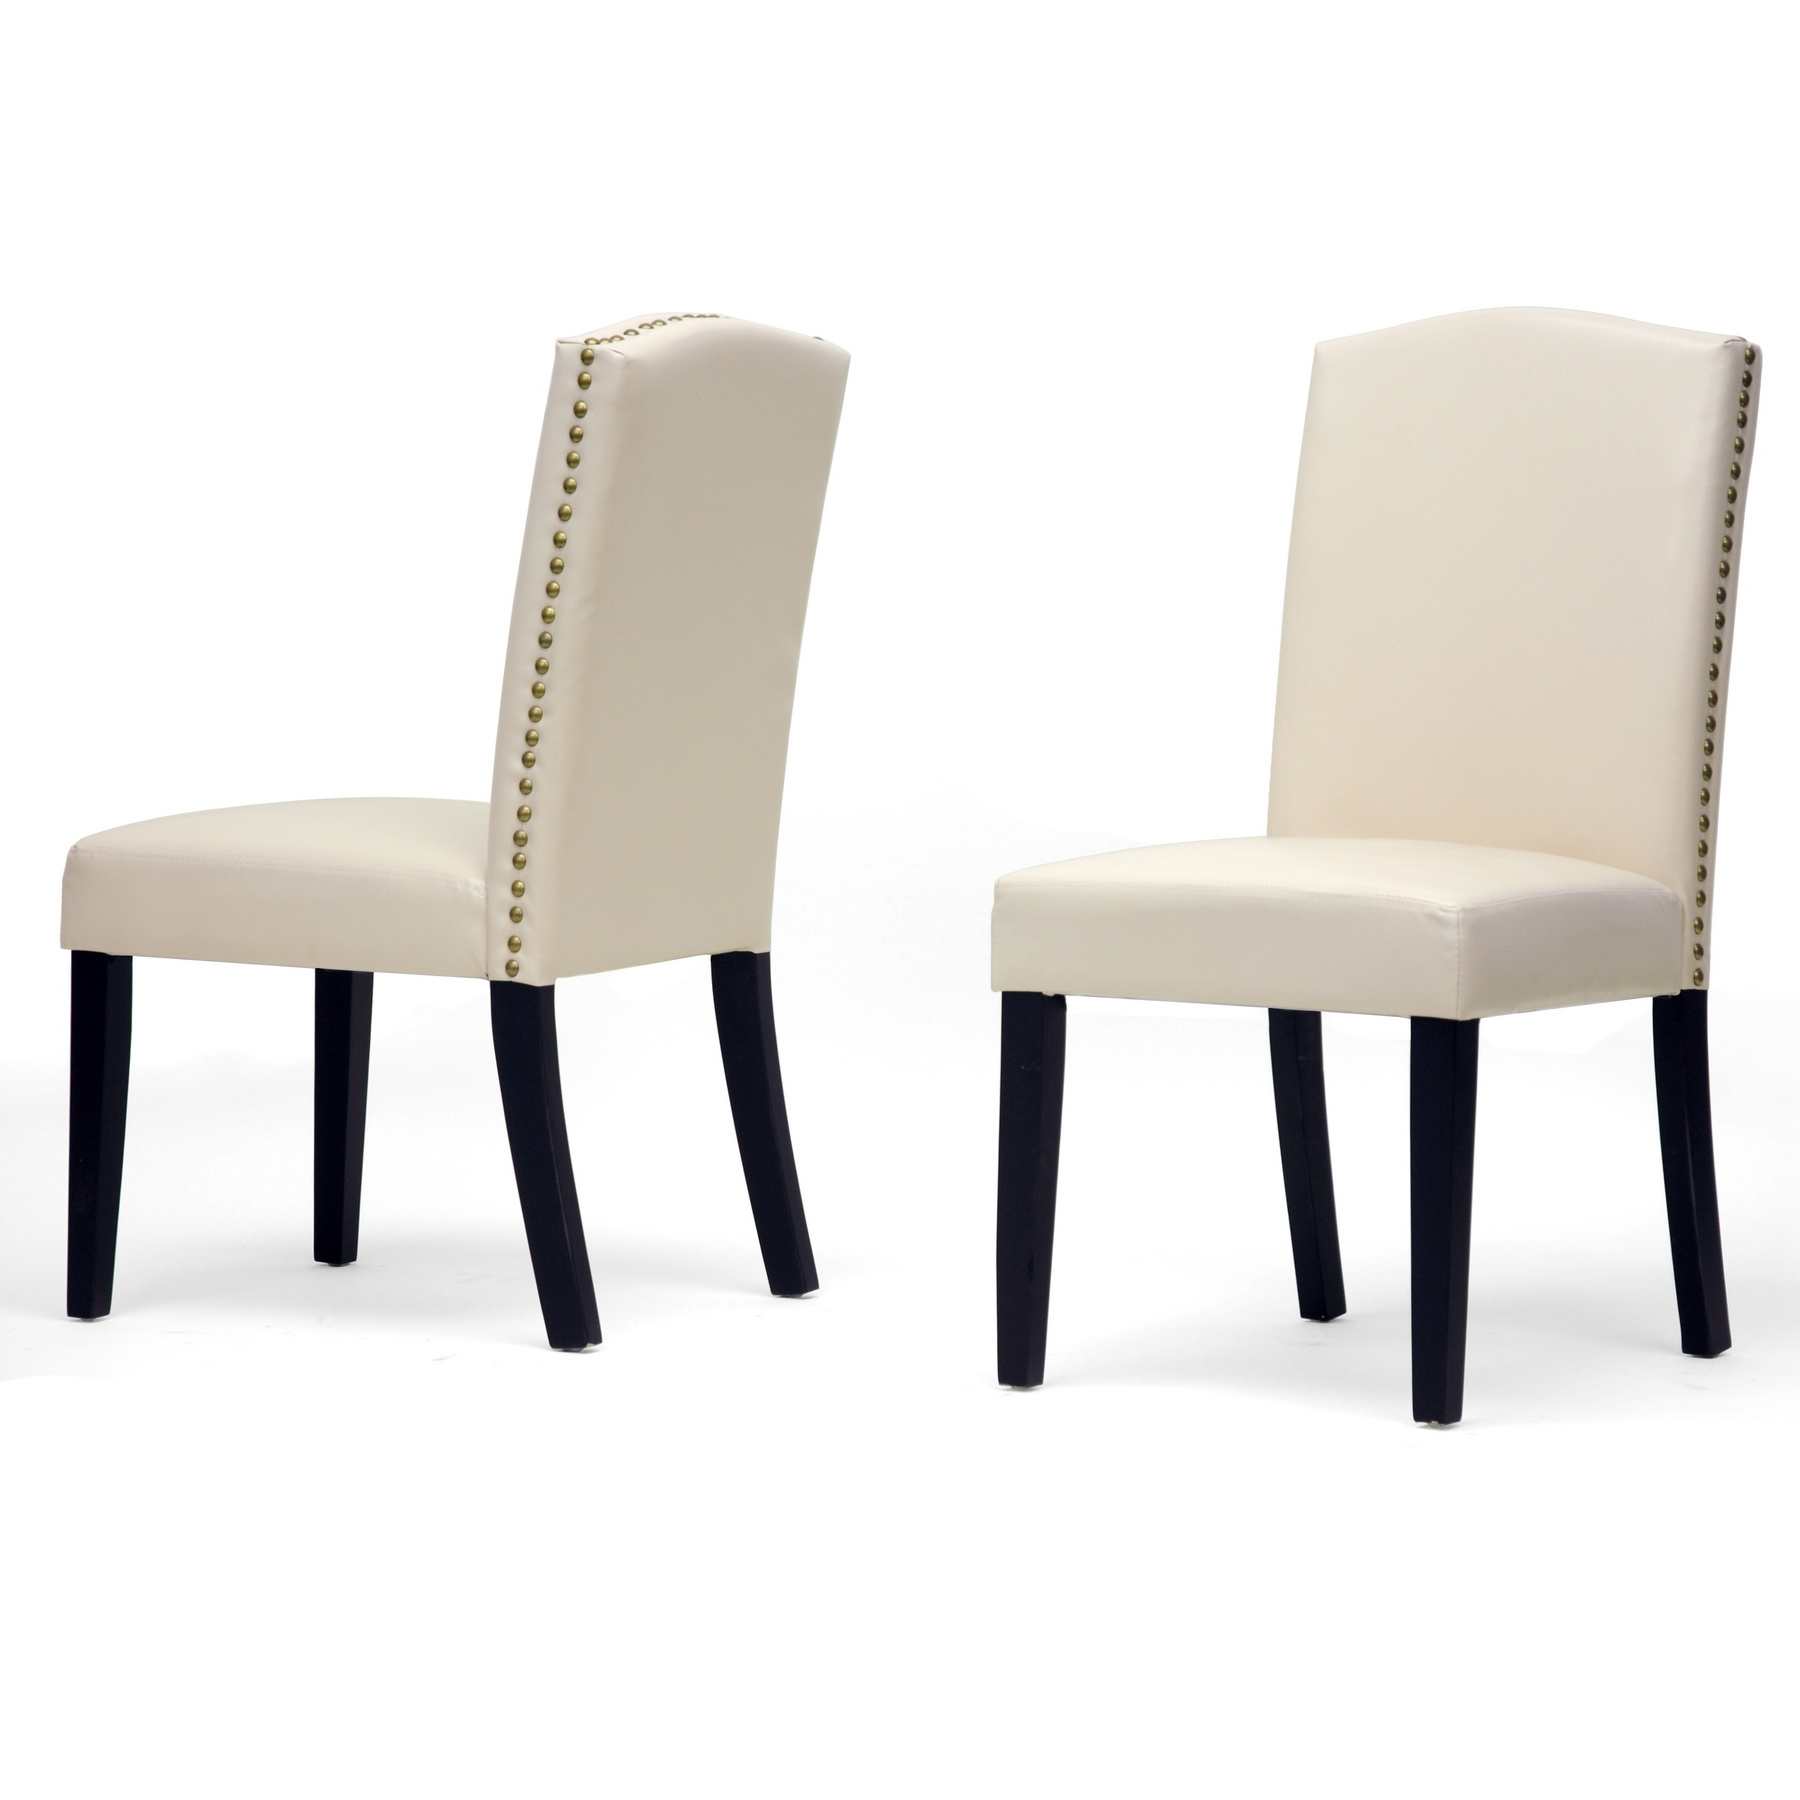 2018 White Leather Chairs With High Back Plus Black Wooden Legs French With High Back Leather Dining Chairs (Gallery 21 of 25)